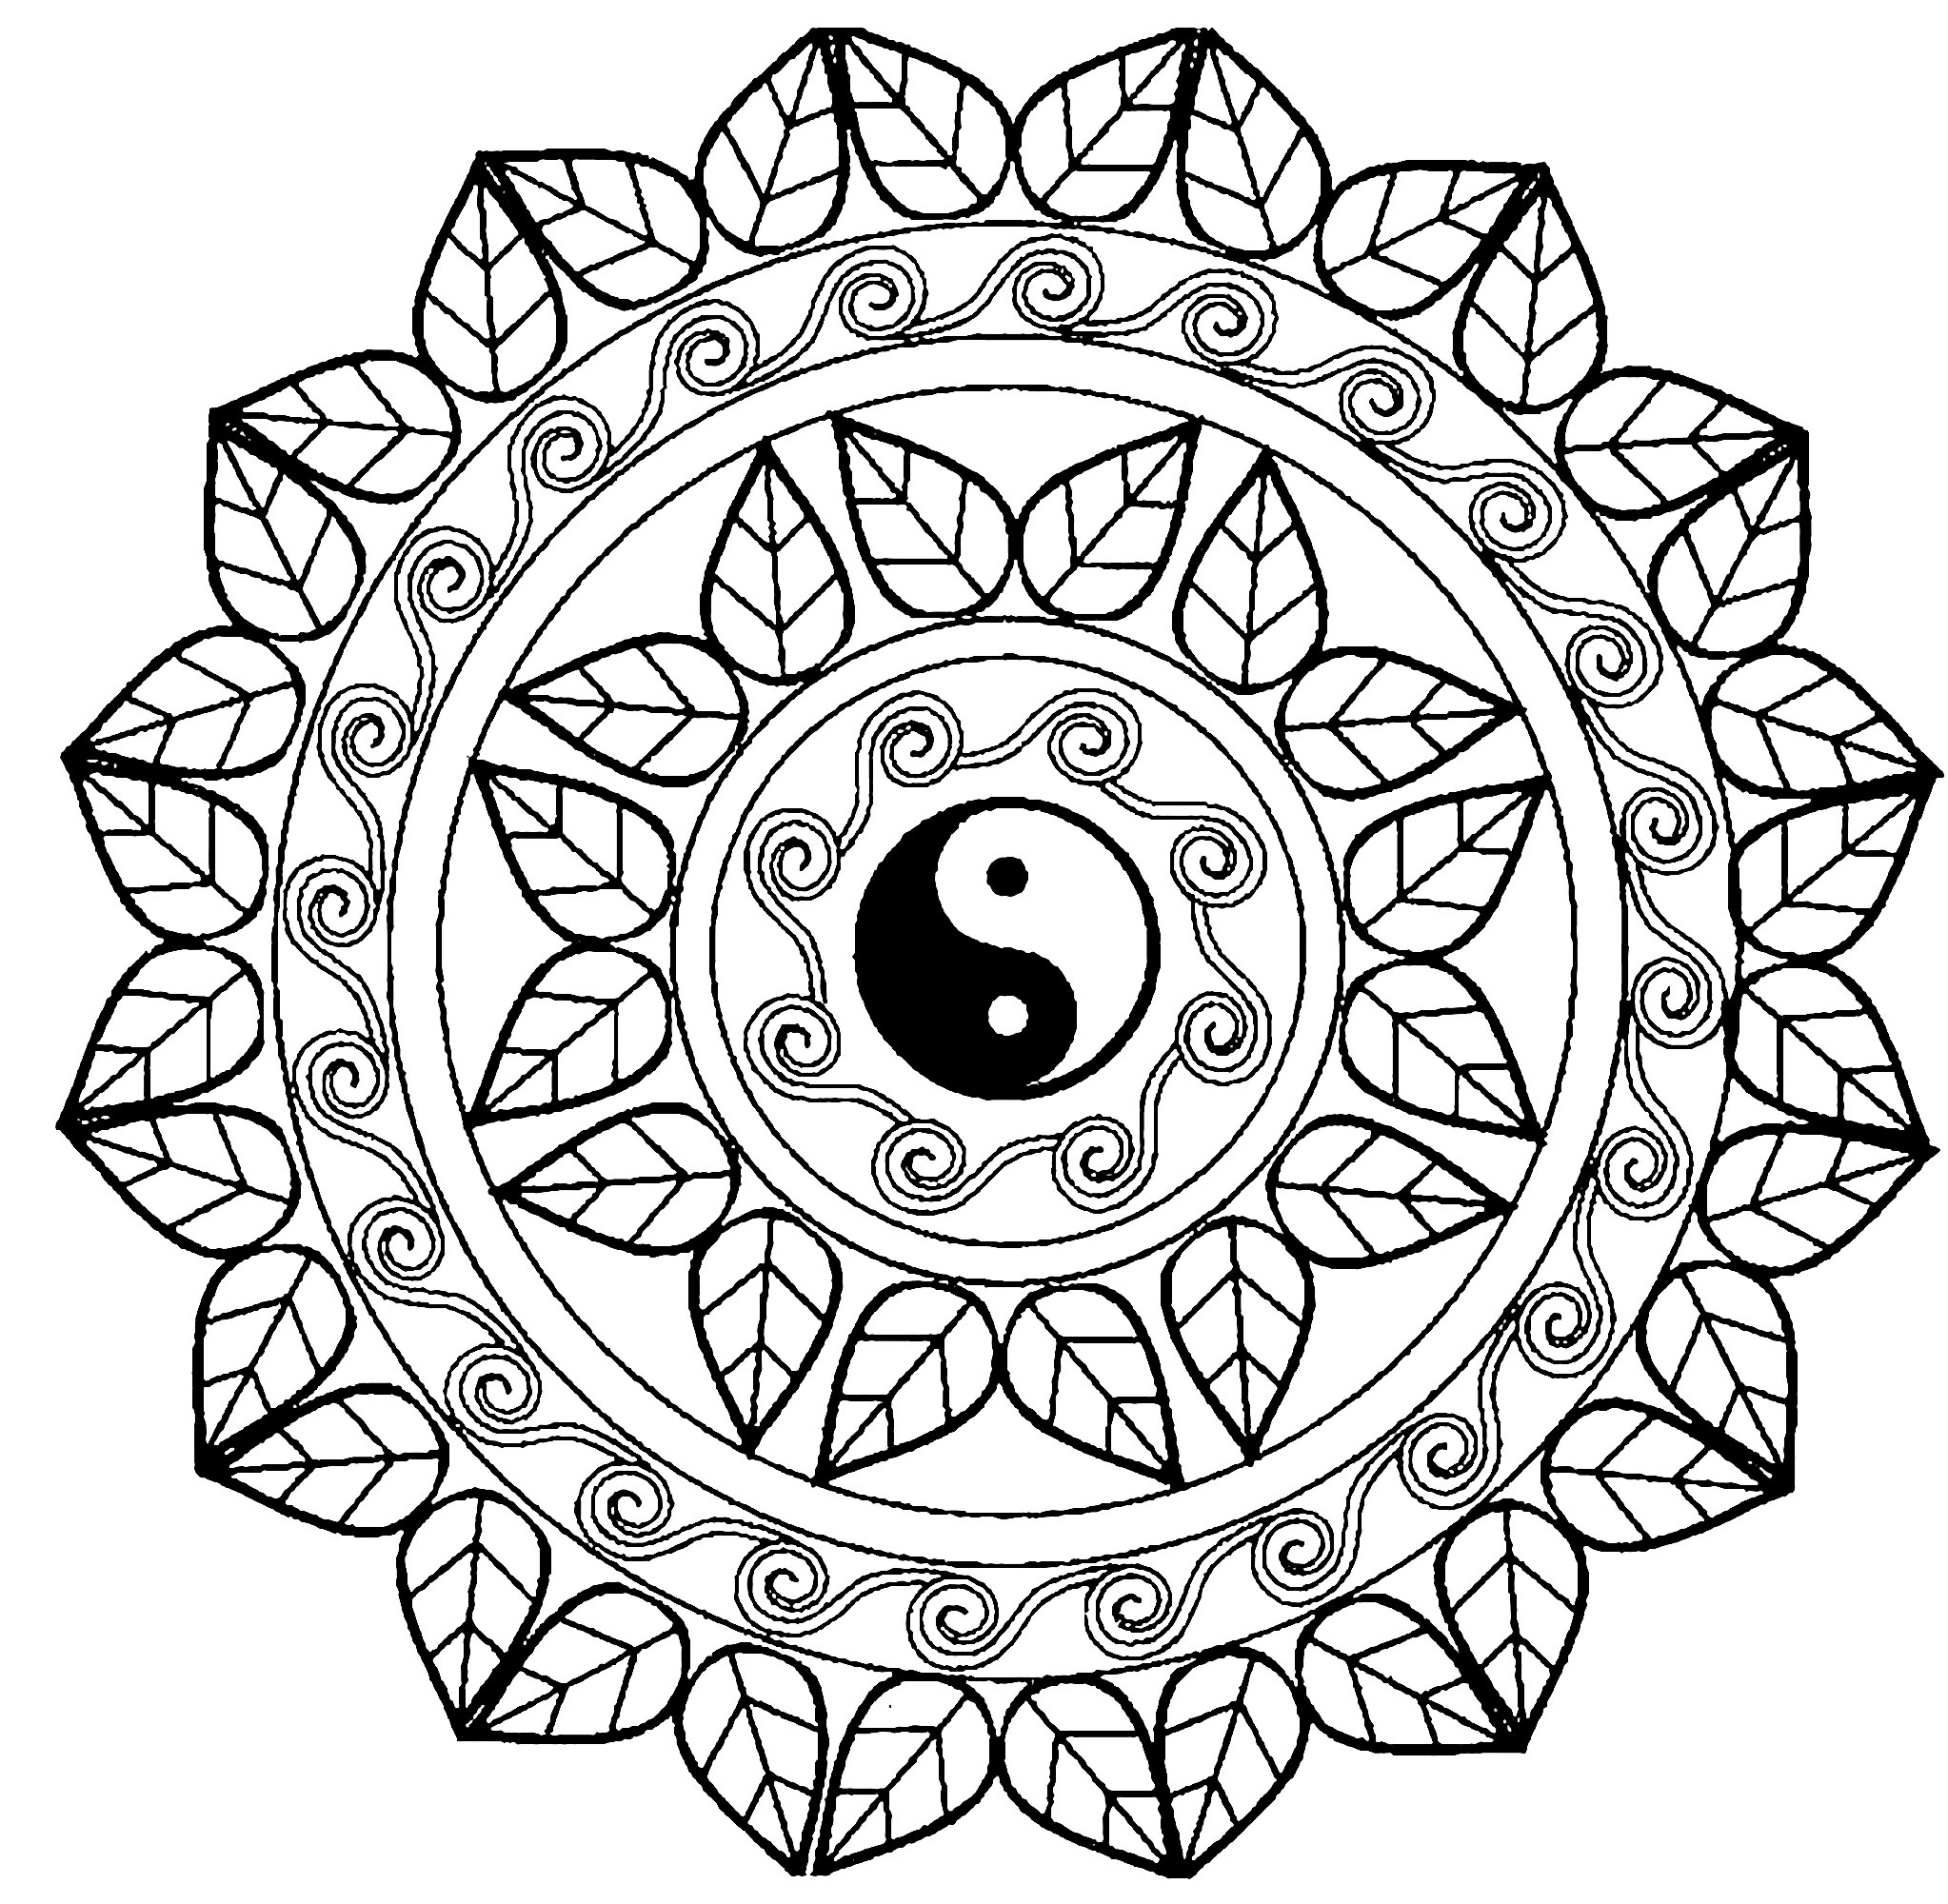 Mandala yin yang Mandalas Coloring pages for adults JustColor